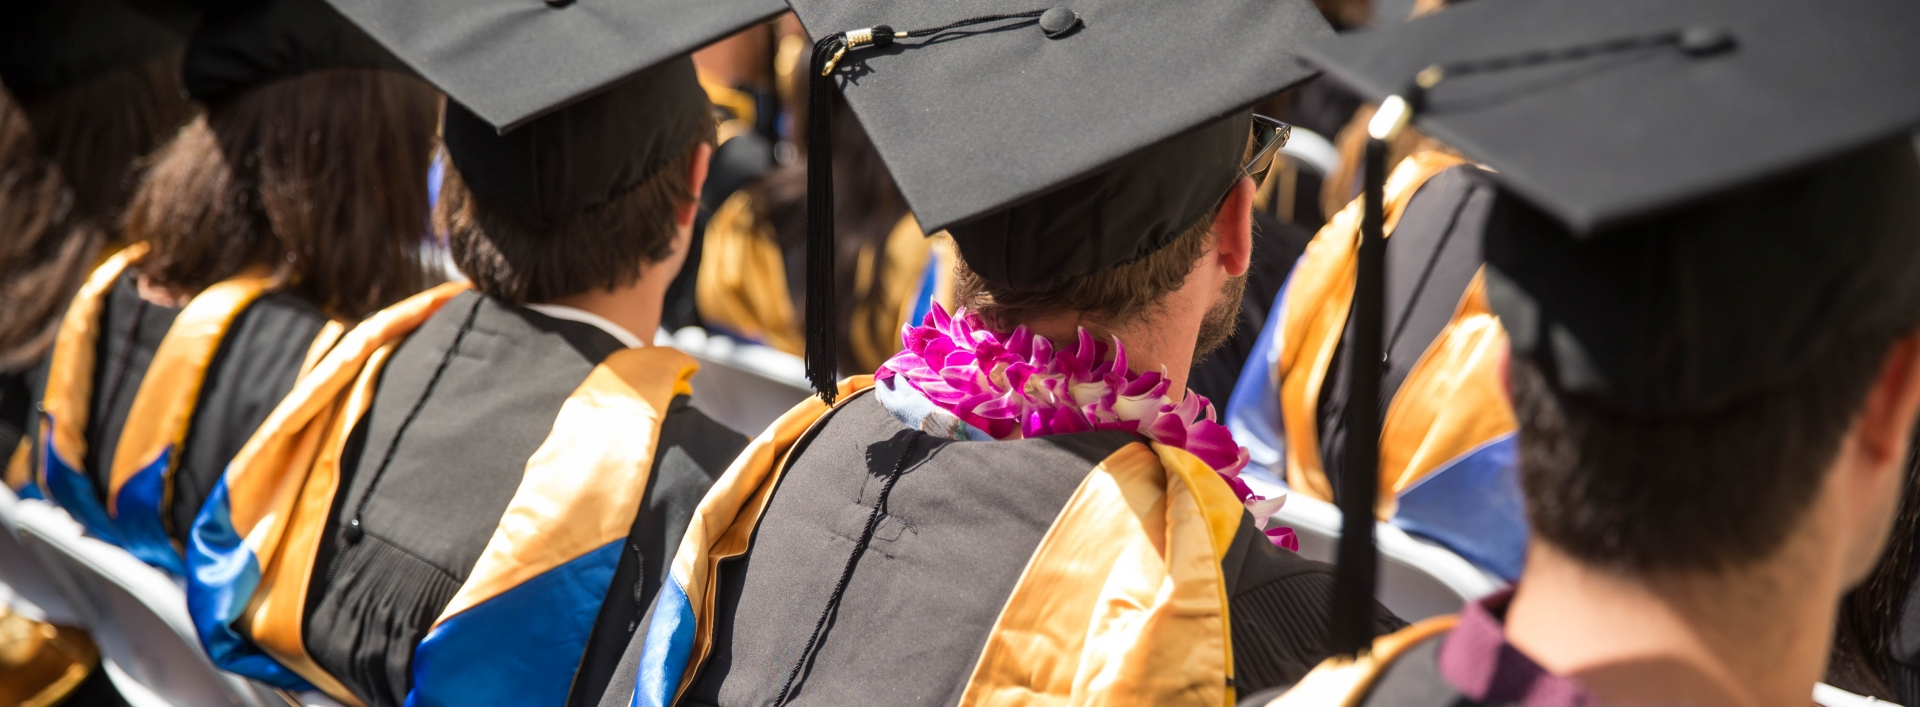 Graduates in caps are seen from behind at commencement